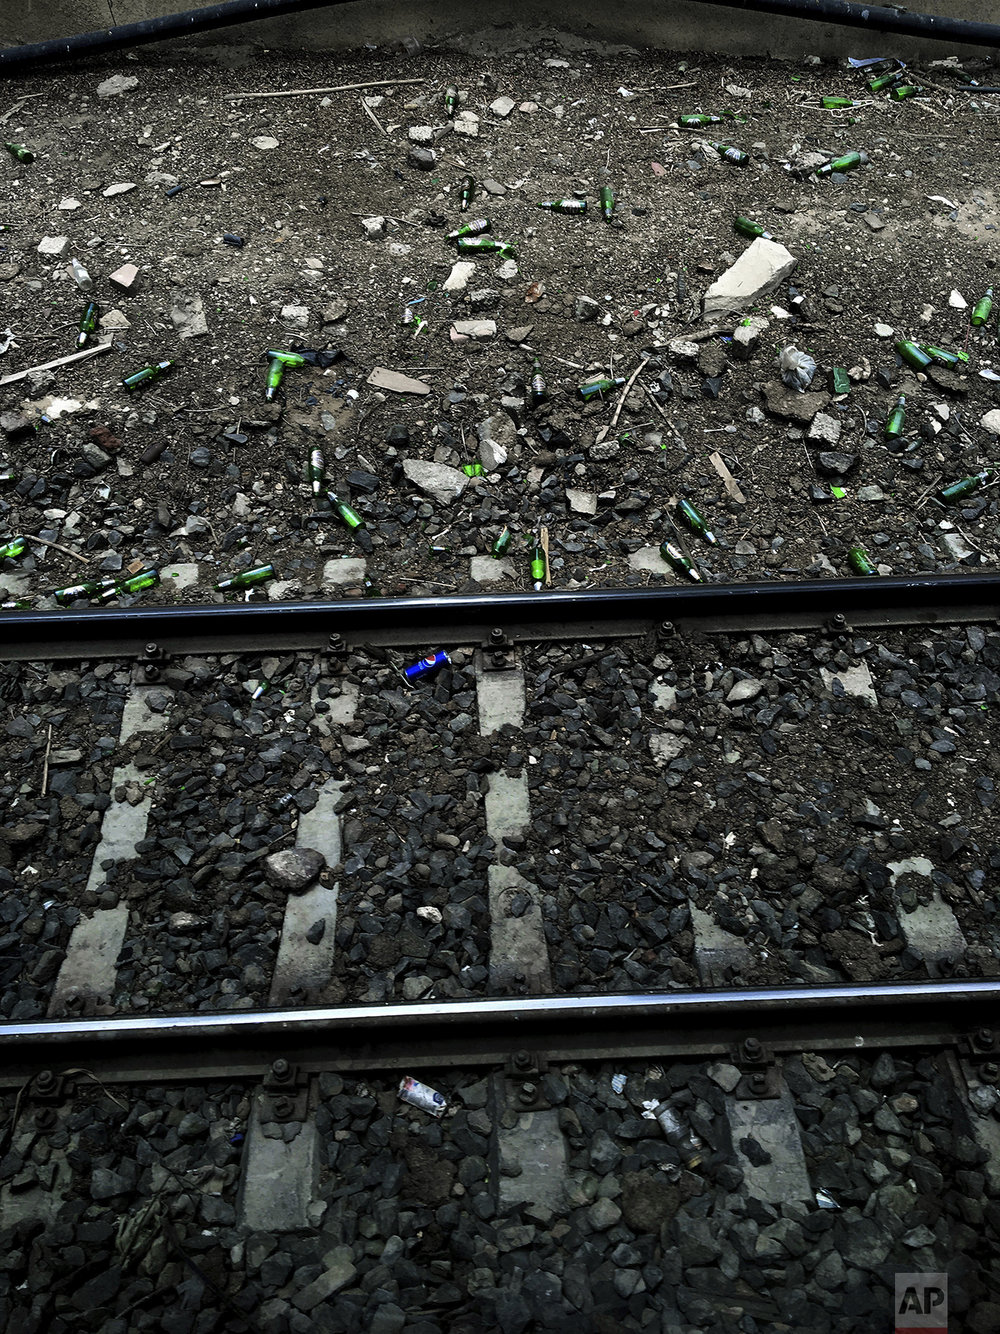 In this May 17, 2017 photo, beer bottles and soda cans lay along the railing of a metro station, in Cairo, Egypt. (AP Photo/Nariman El-Mofty)